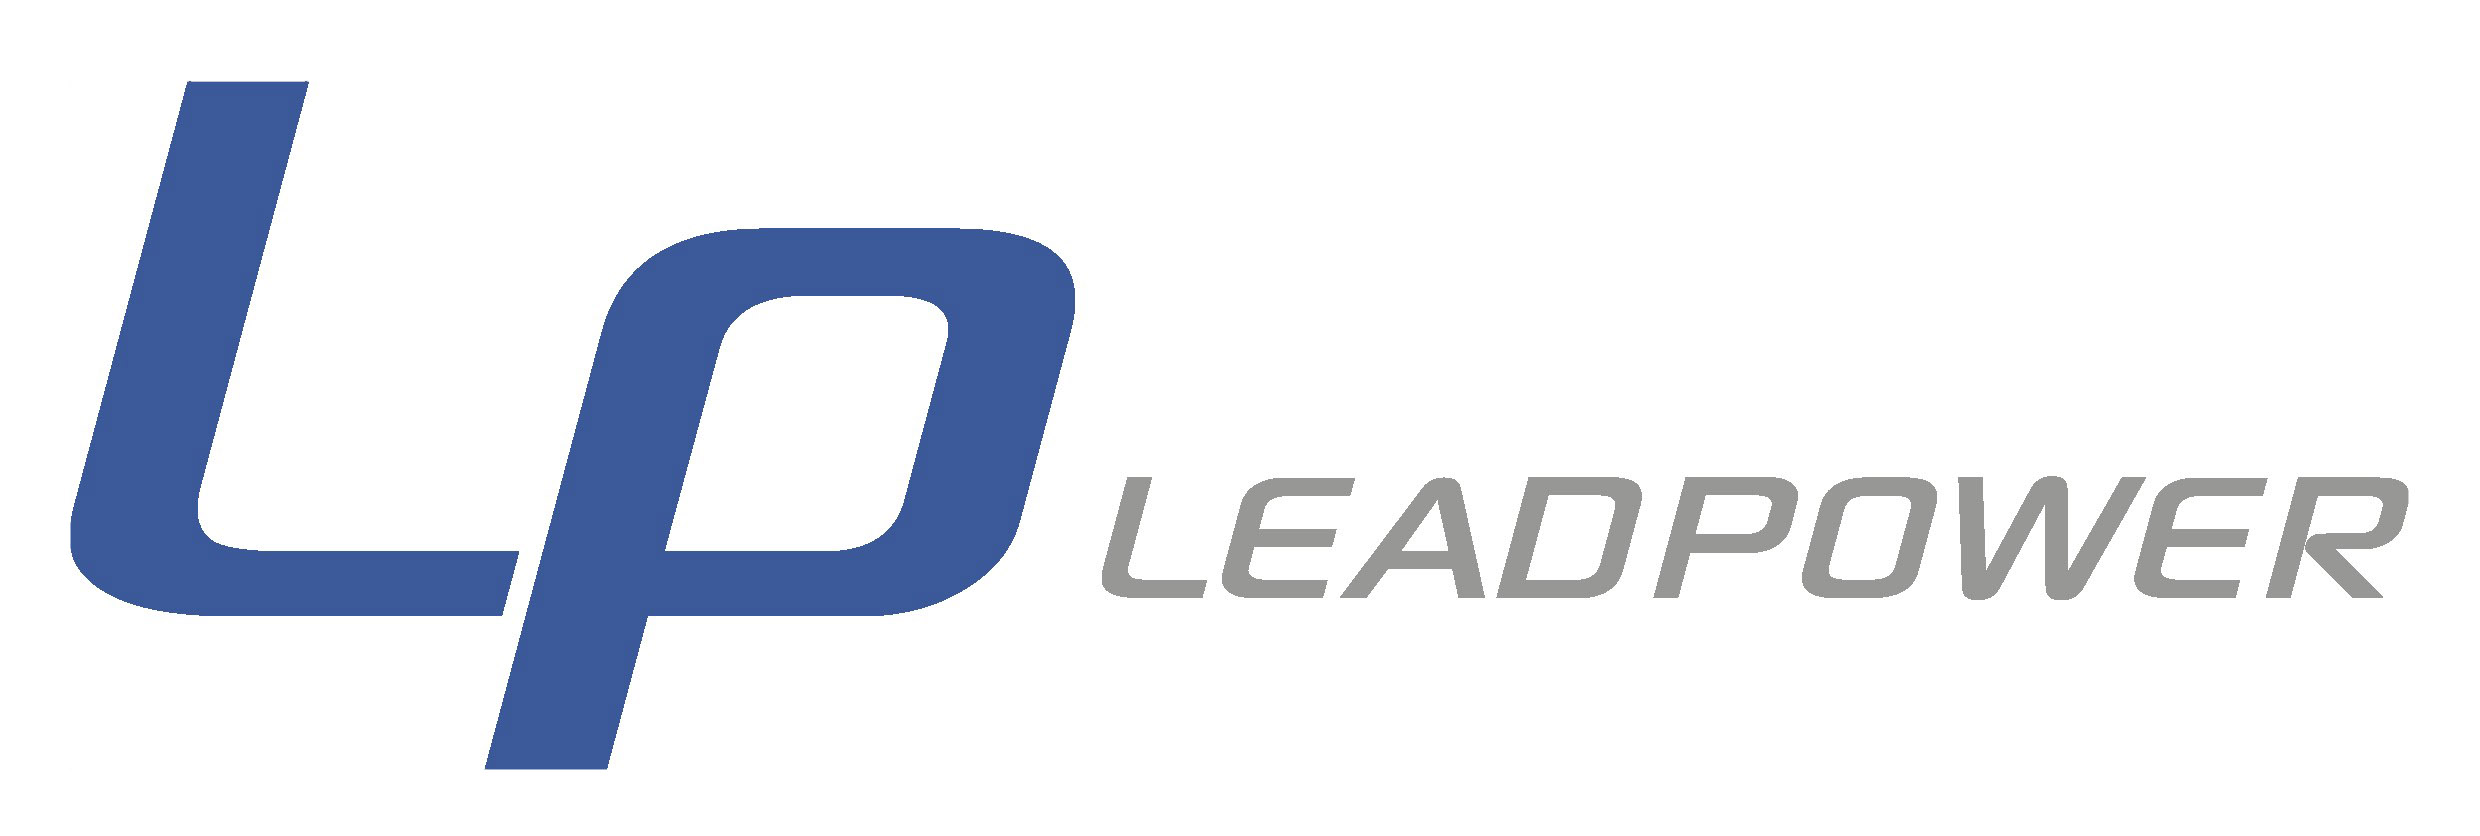 Leadpower Co., Ltd